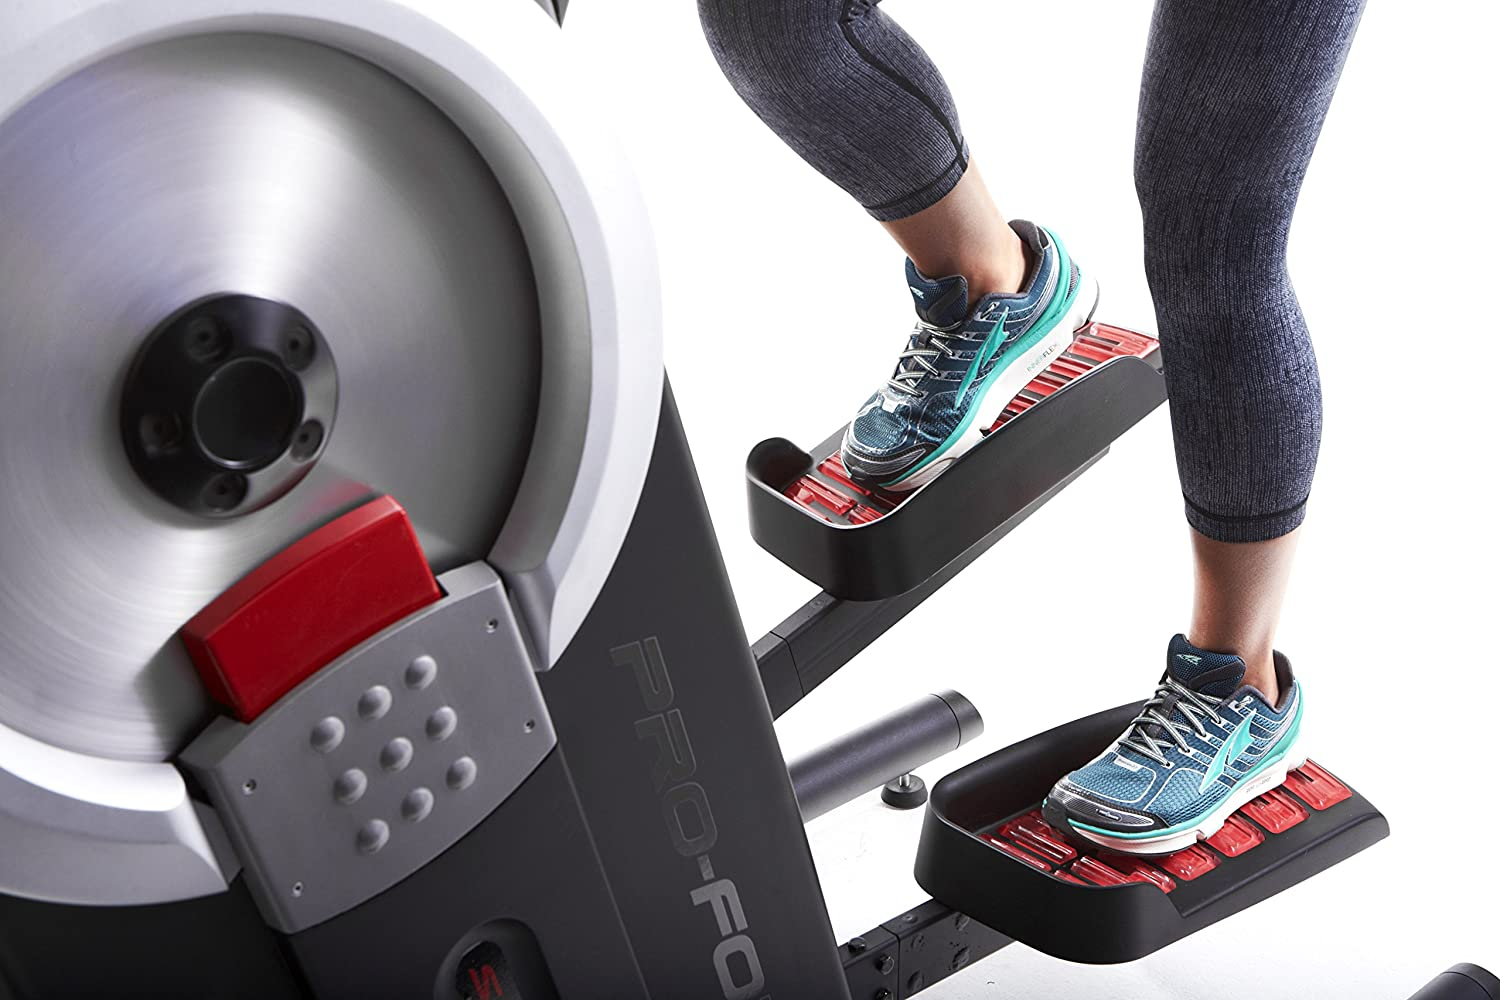 What muscles does the elliptical work?